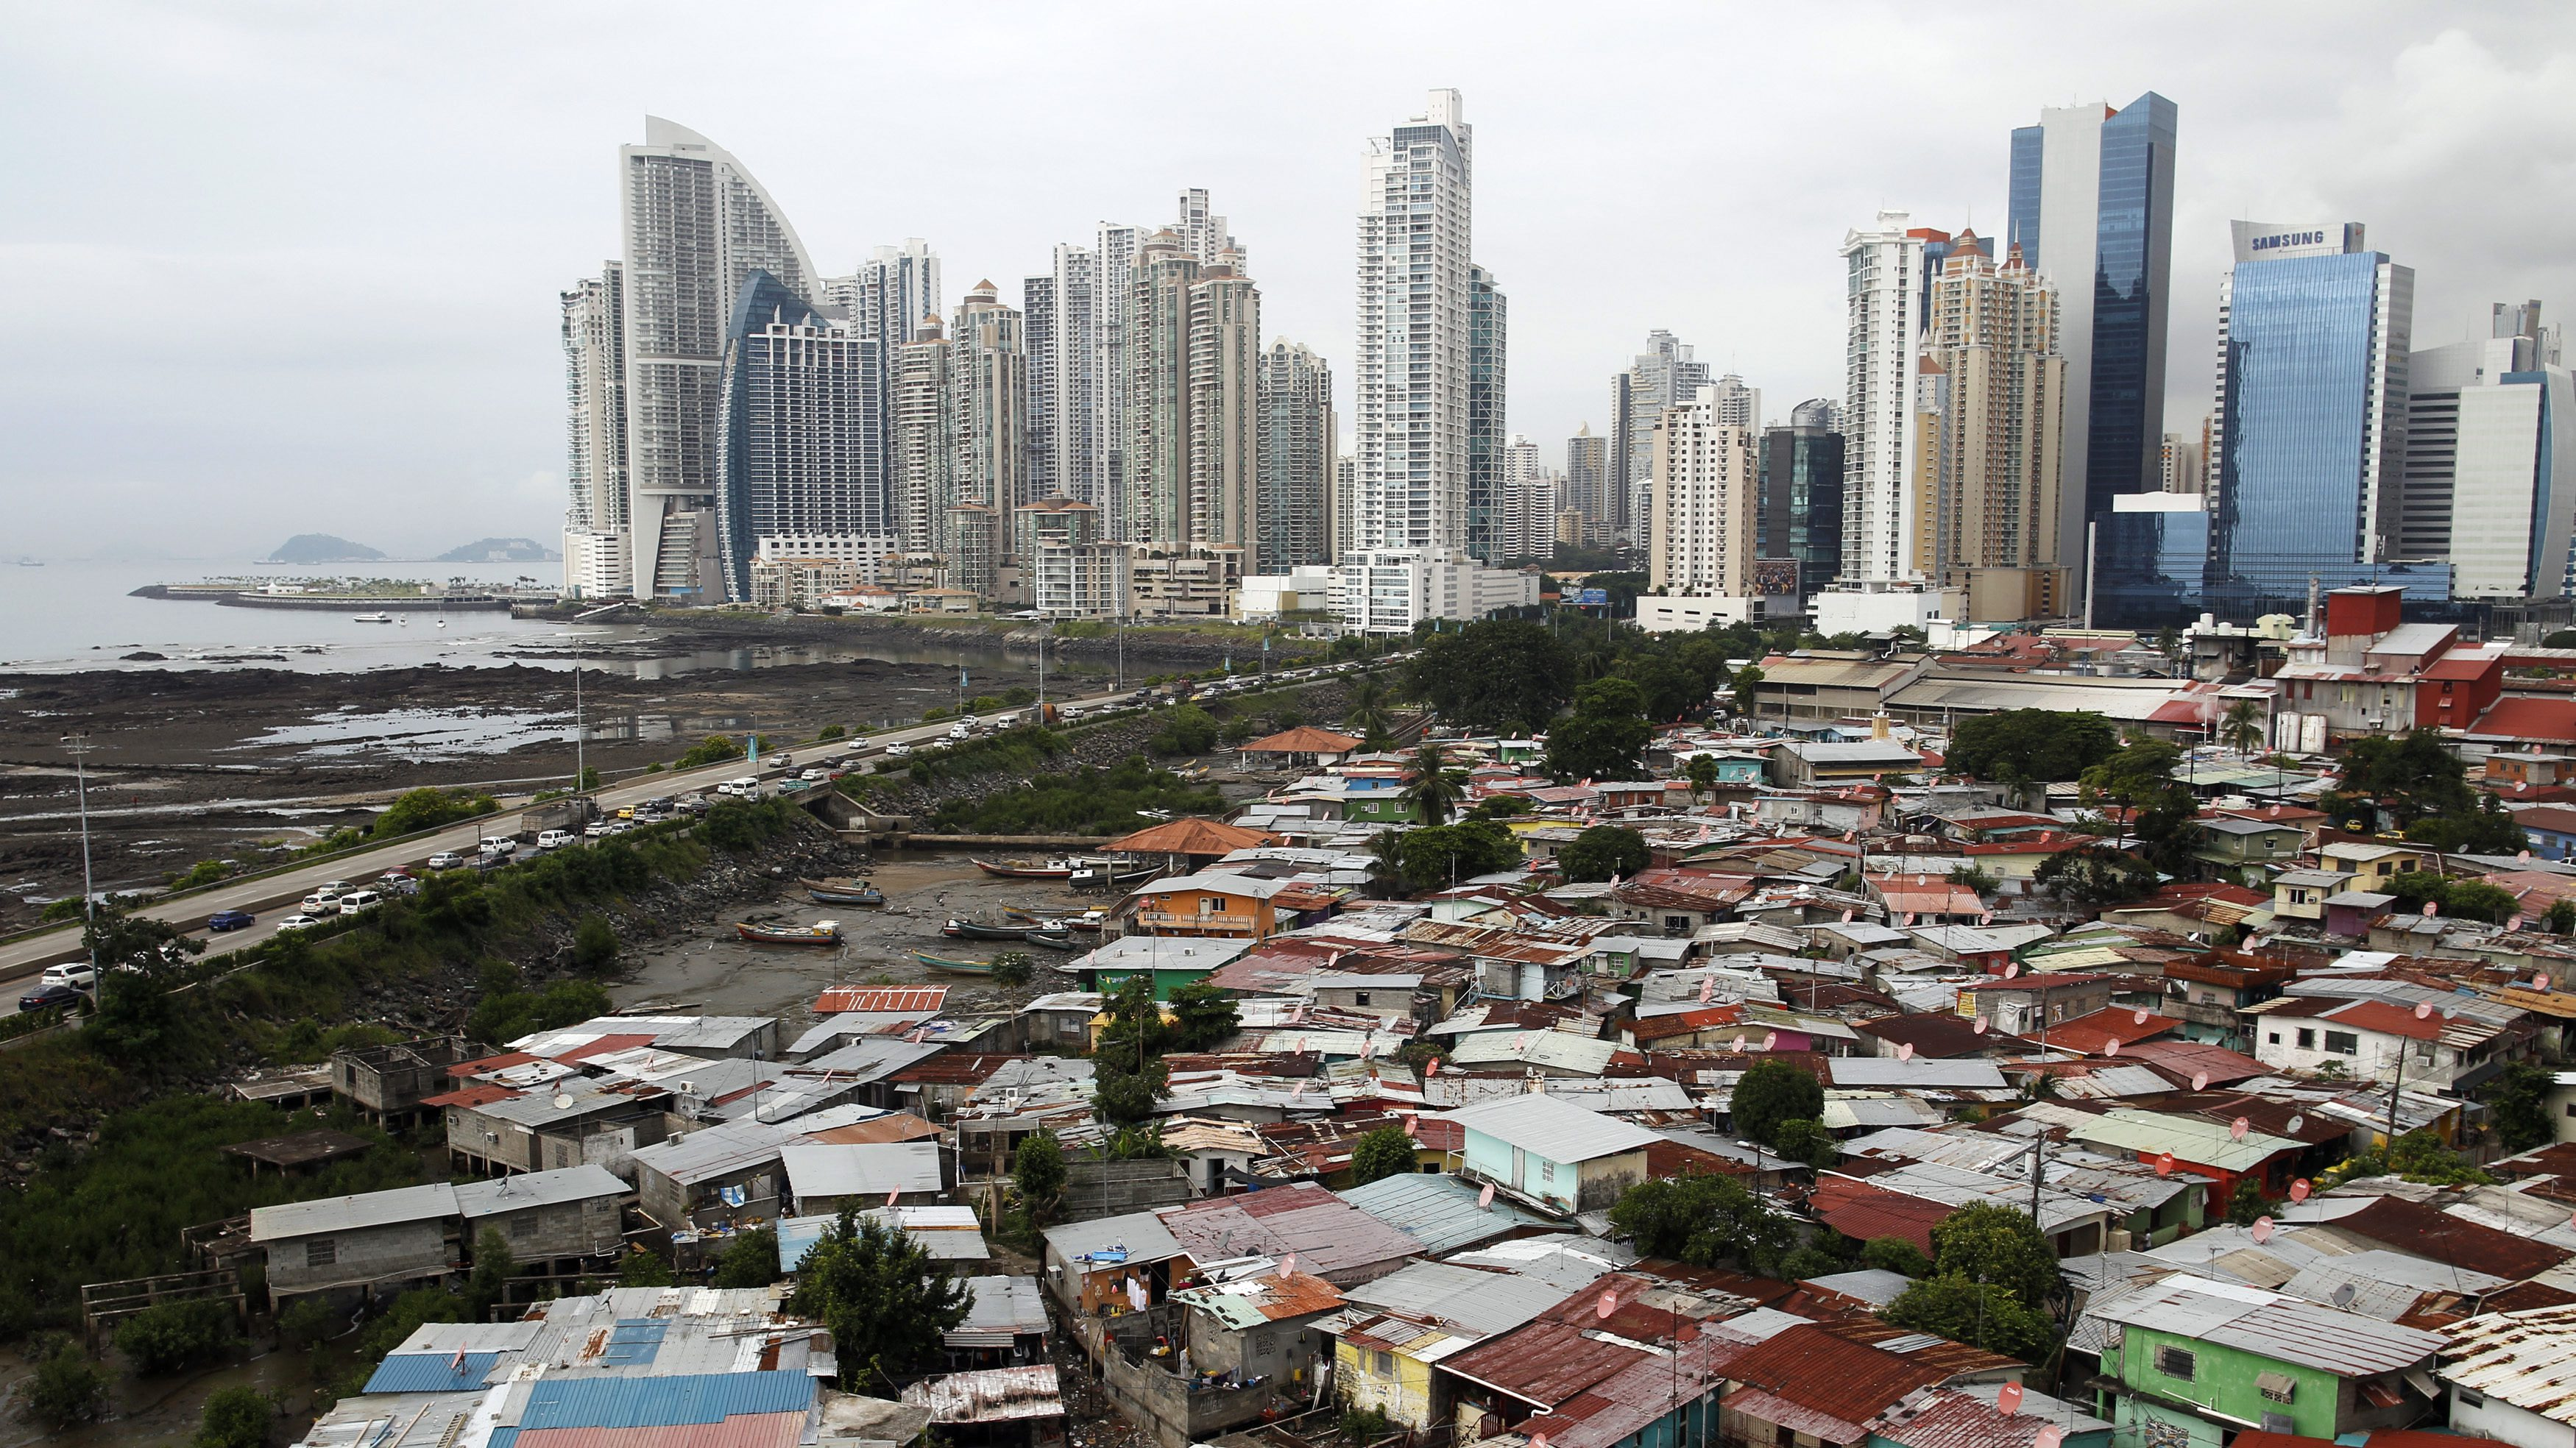 A general view of the low-income neighborhood known as Boca la Caja next to the business district in Panama City